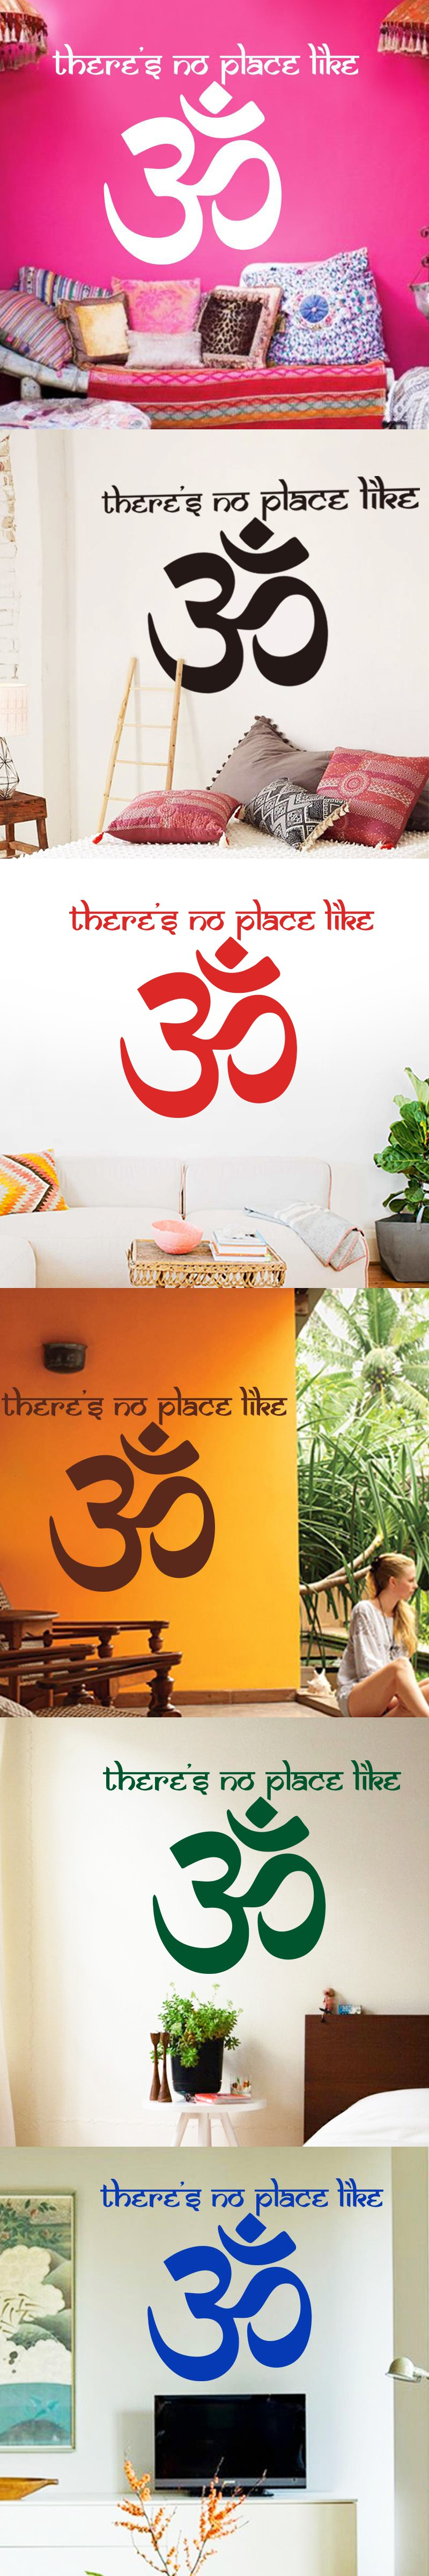 Om Shanti Om Symbol Hinduism Vinyl Wall Sticker Yogs Namaste Home Decoration  Decals Indian Peace Stickers